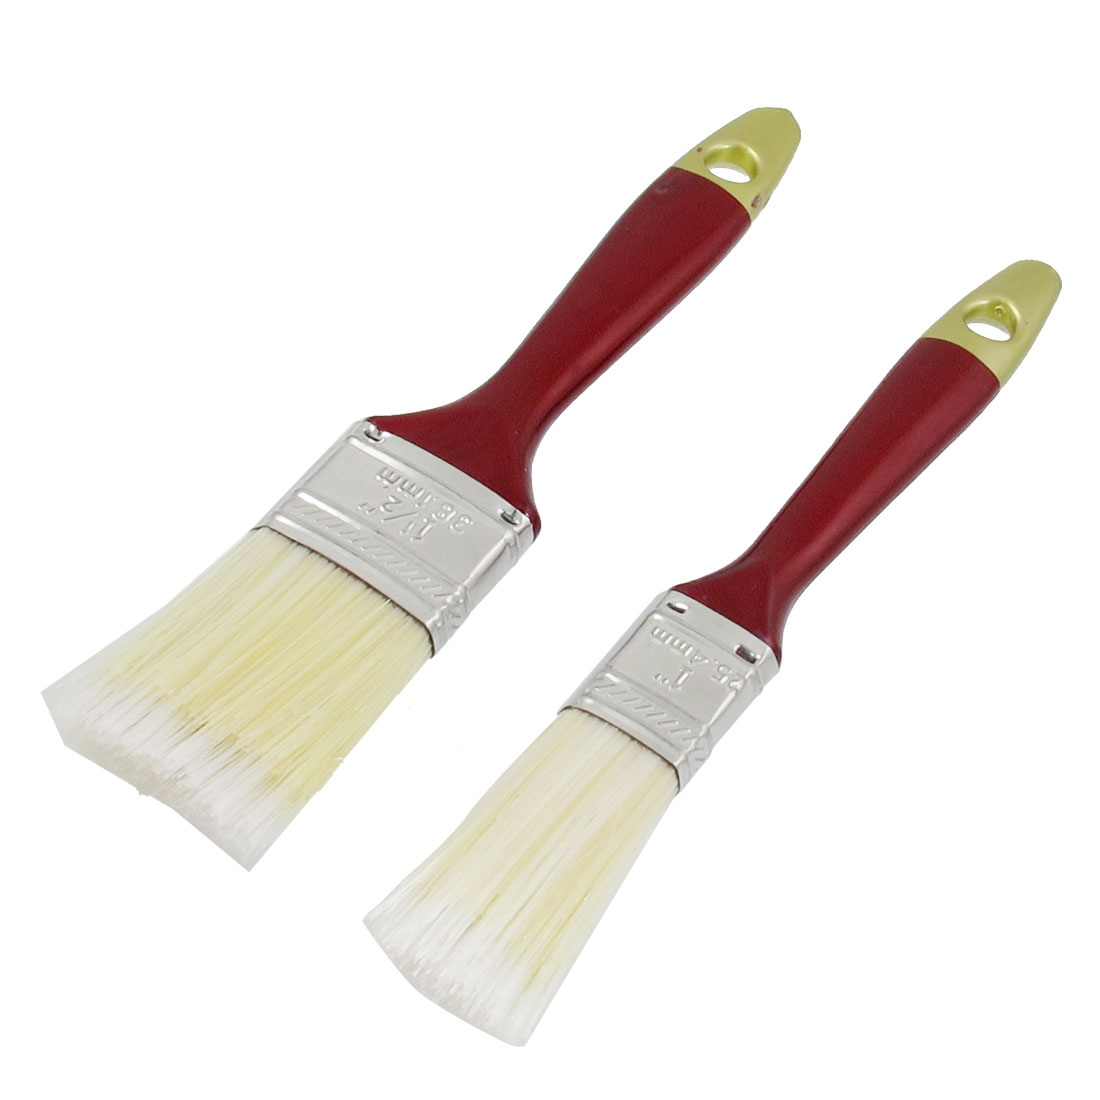 "2 Pcs Red Paint Coated Plastic Handle Car Flow Vent Clean Brushes 1"" 1.5"""